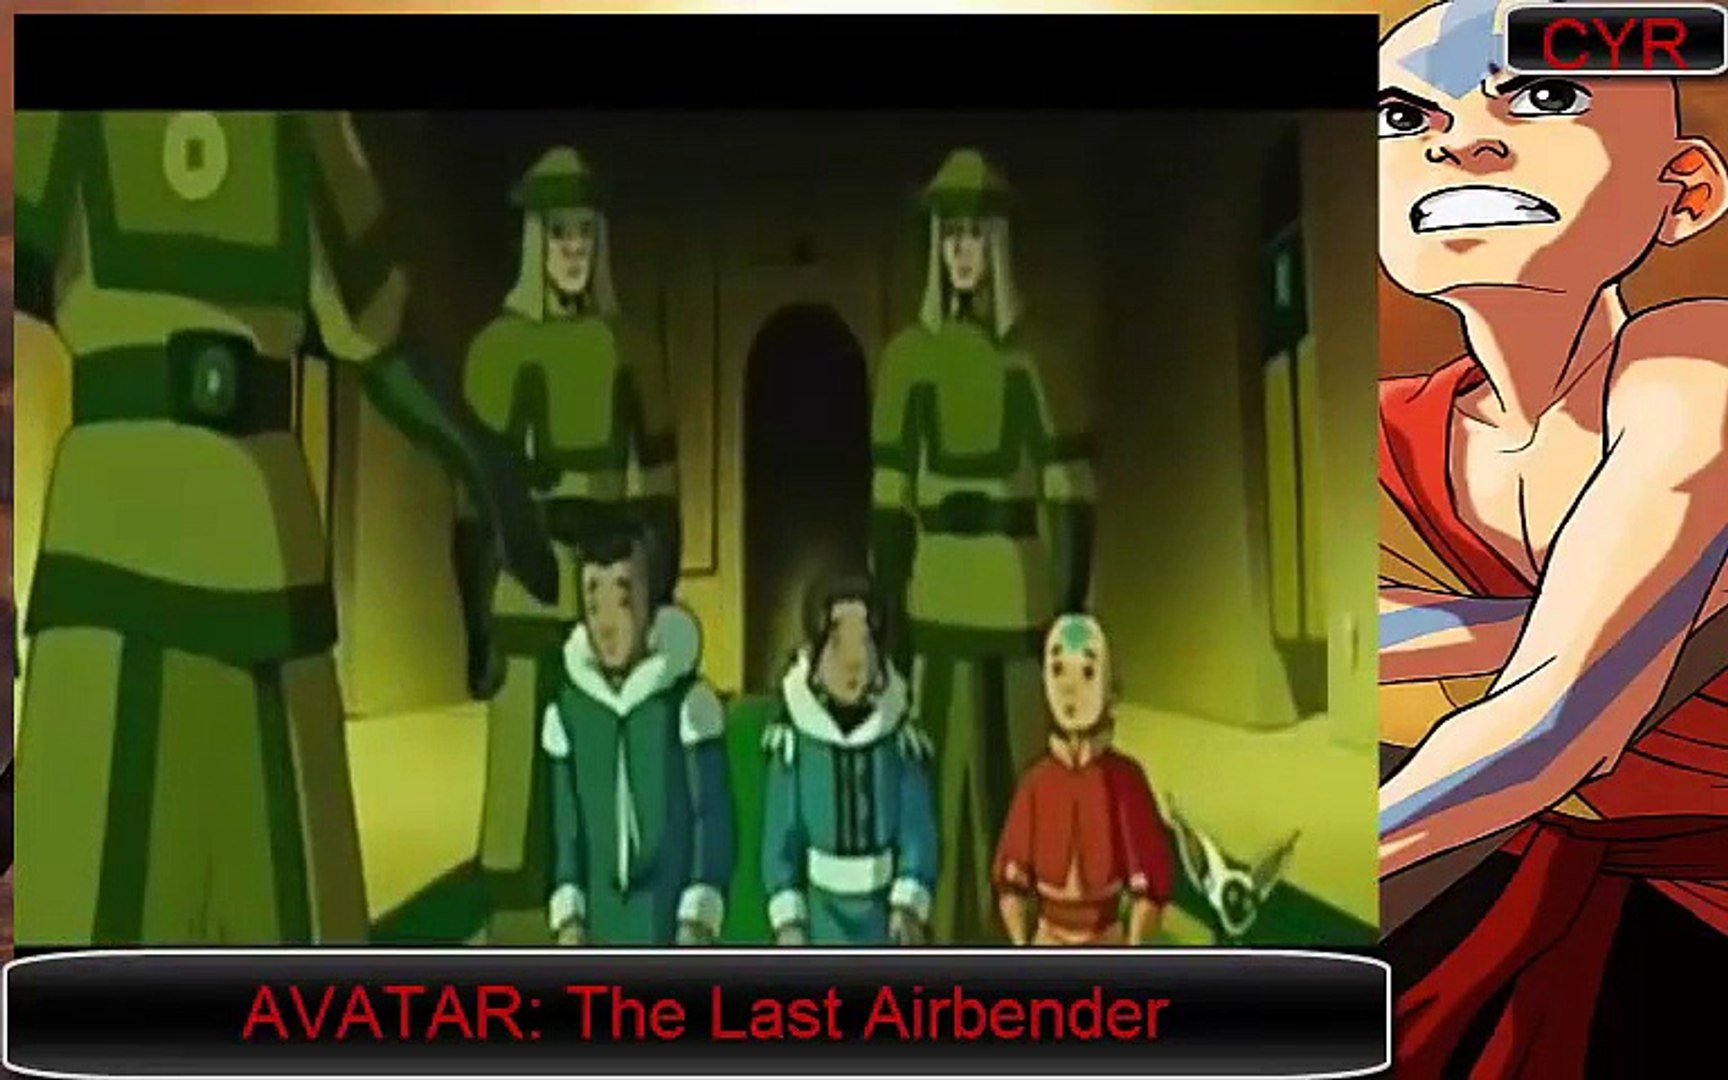 Avatar The Last Aİrbender Season 1 Episode 5 The King of Omashu